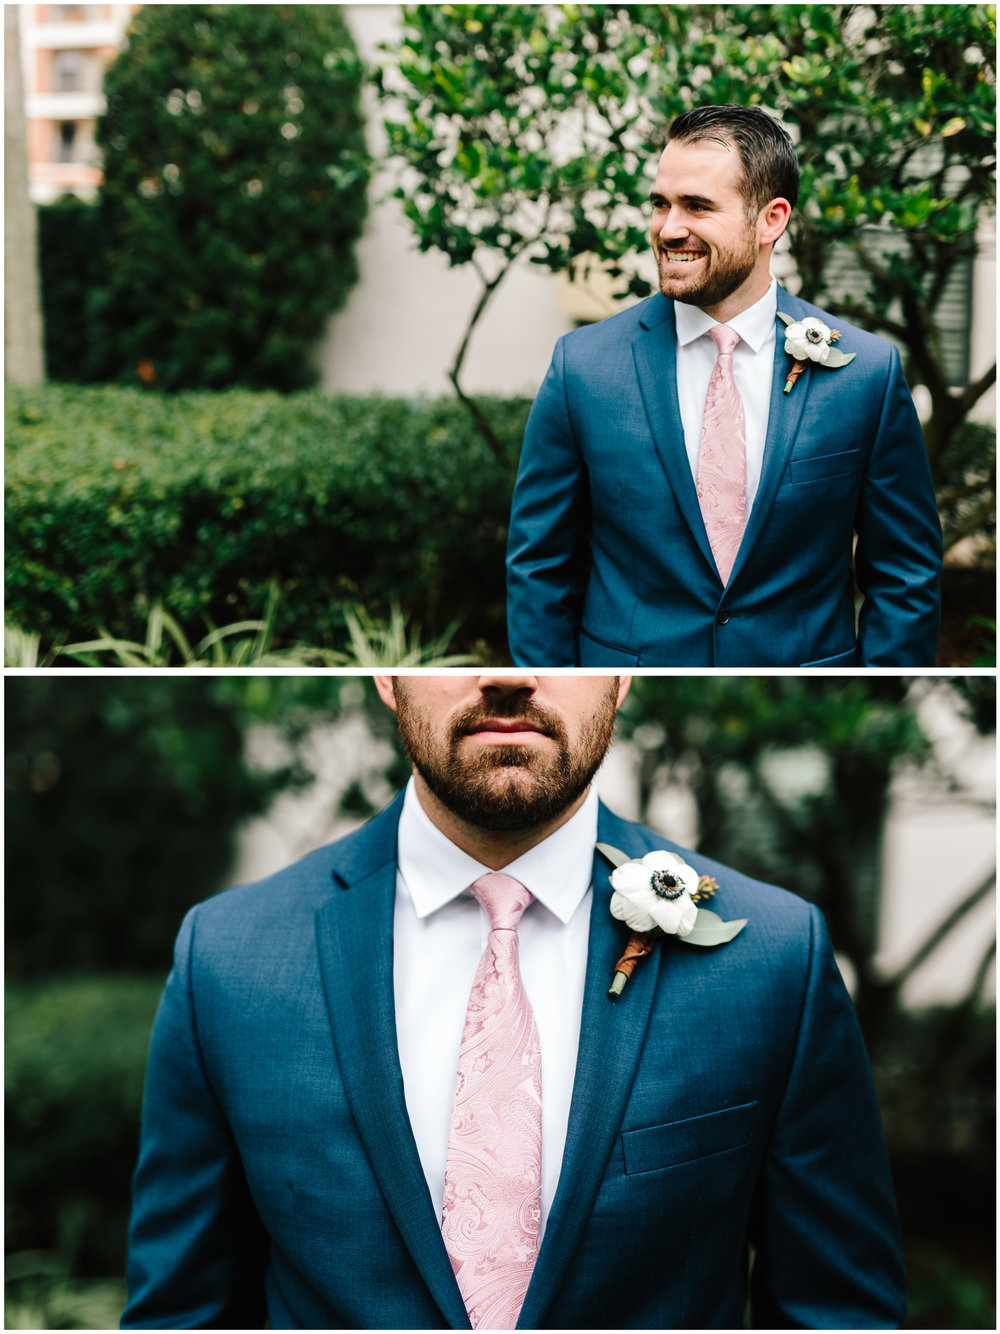 Dapper groom in his navy suit and blush pink tie with anemone boutonniere